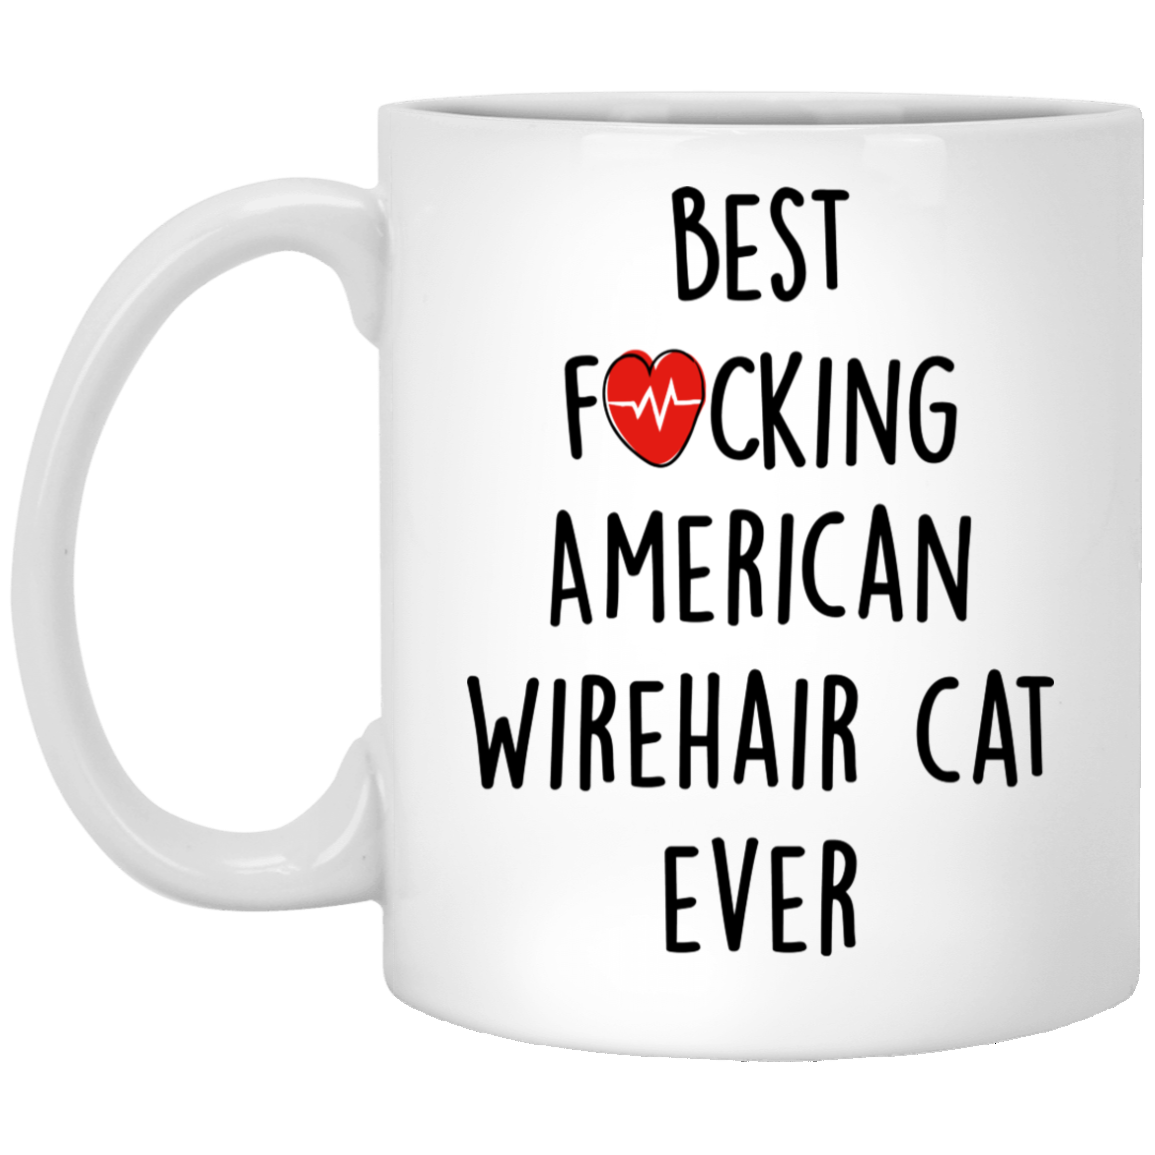 Funny-Fuking-American-Wirehair-cat-ever Funny Quotes Coffee Mug 99promocode